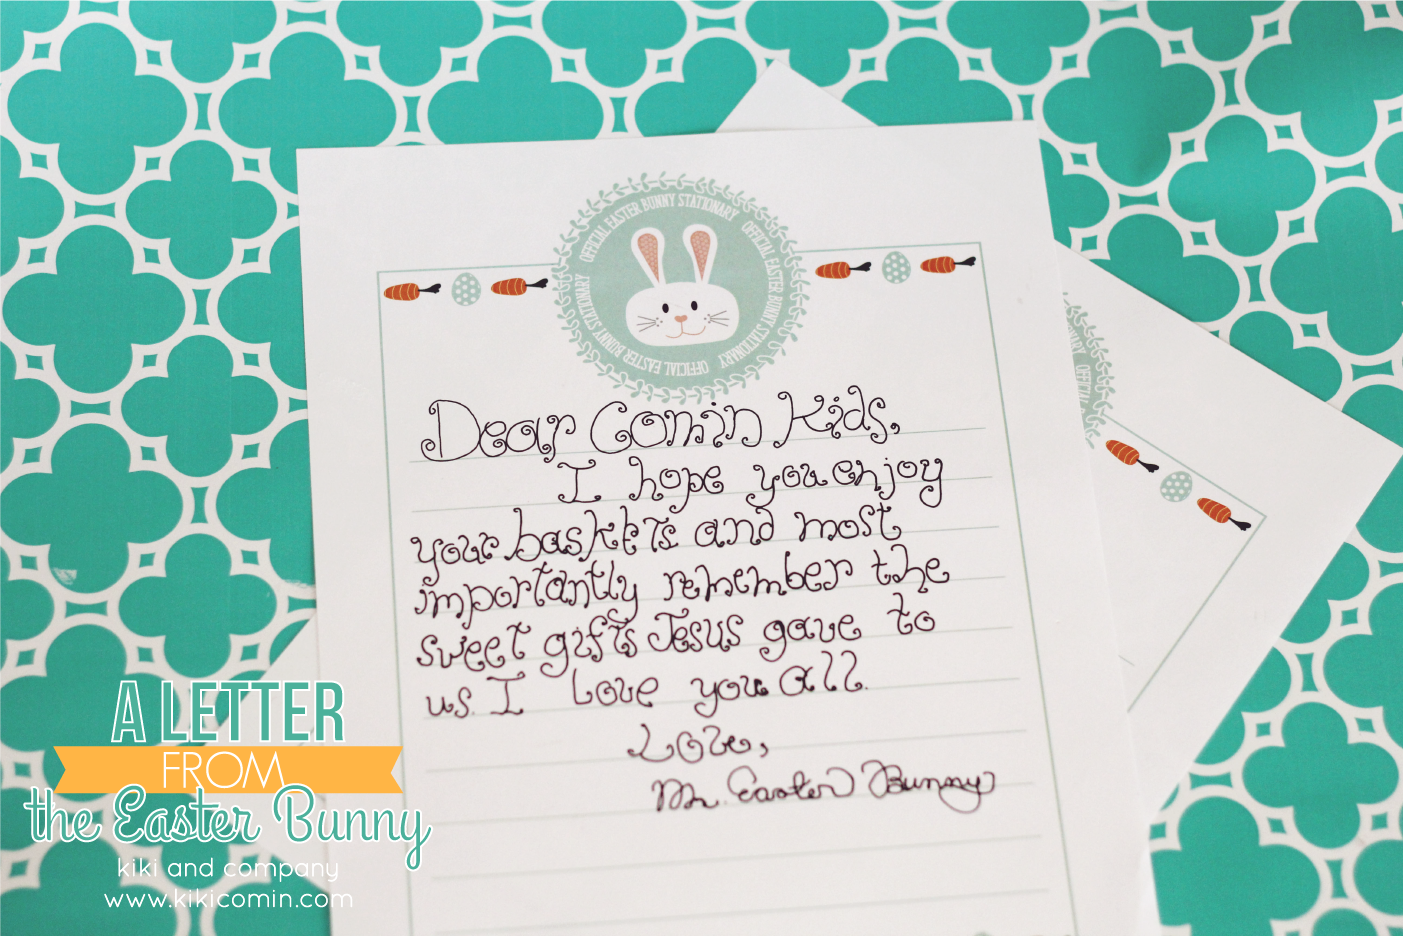 a letter from the easter bunny my kids will love this